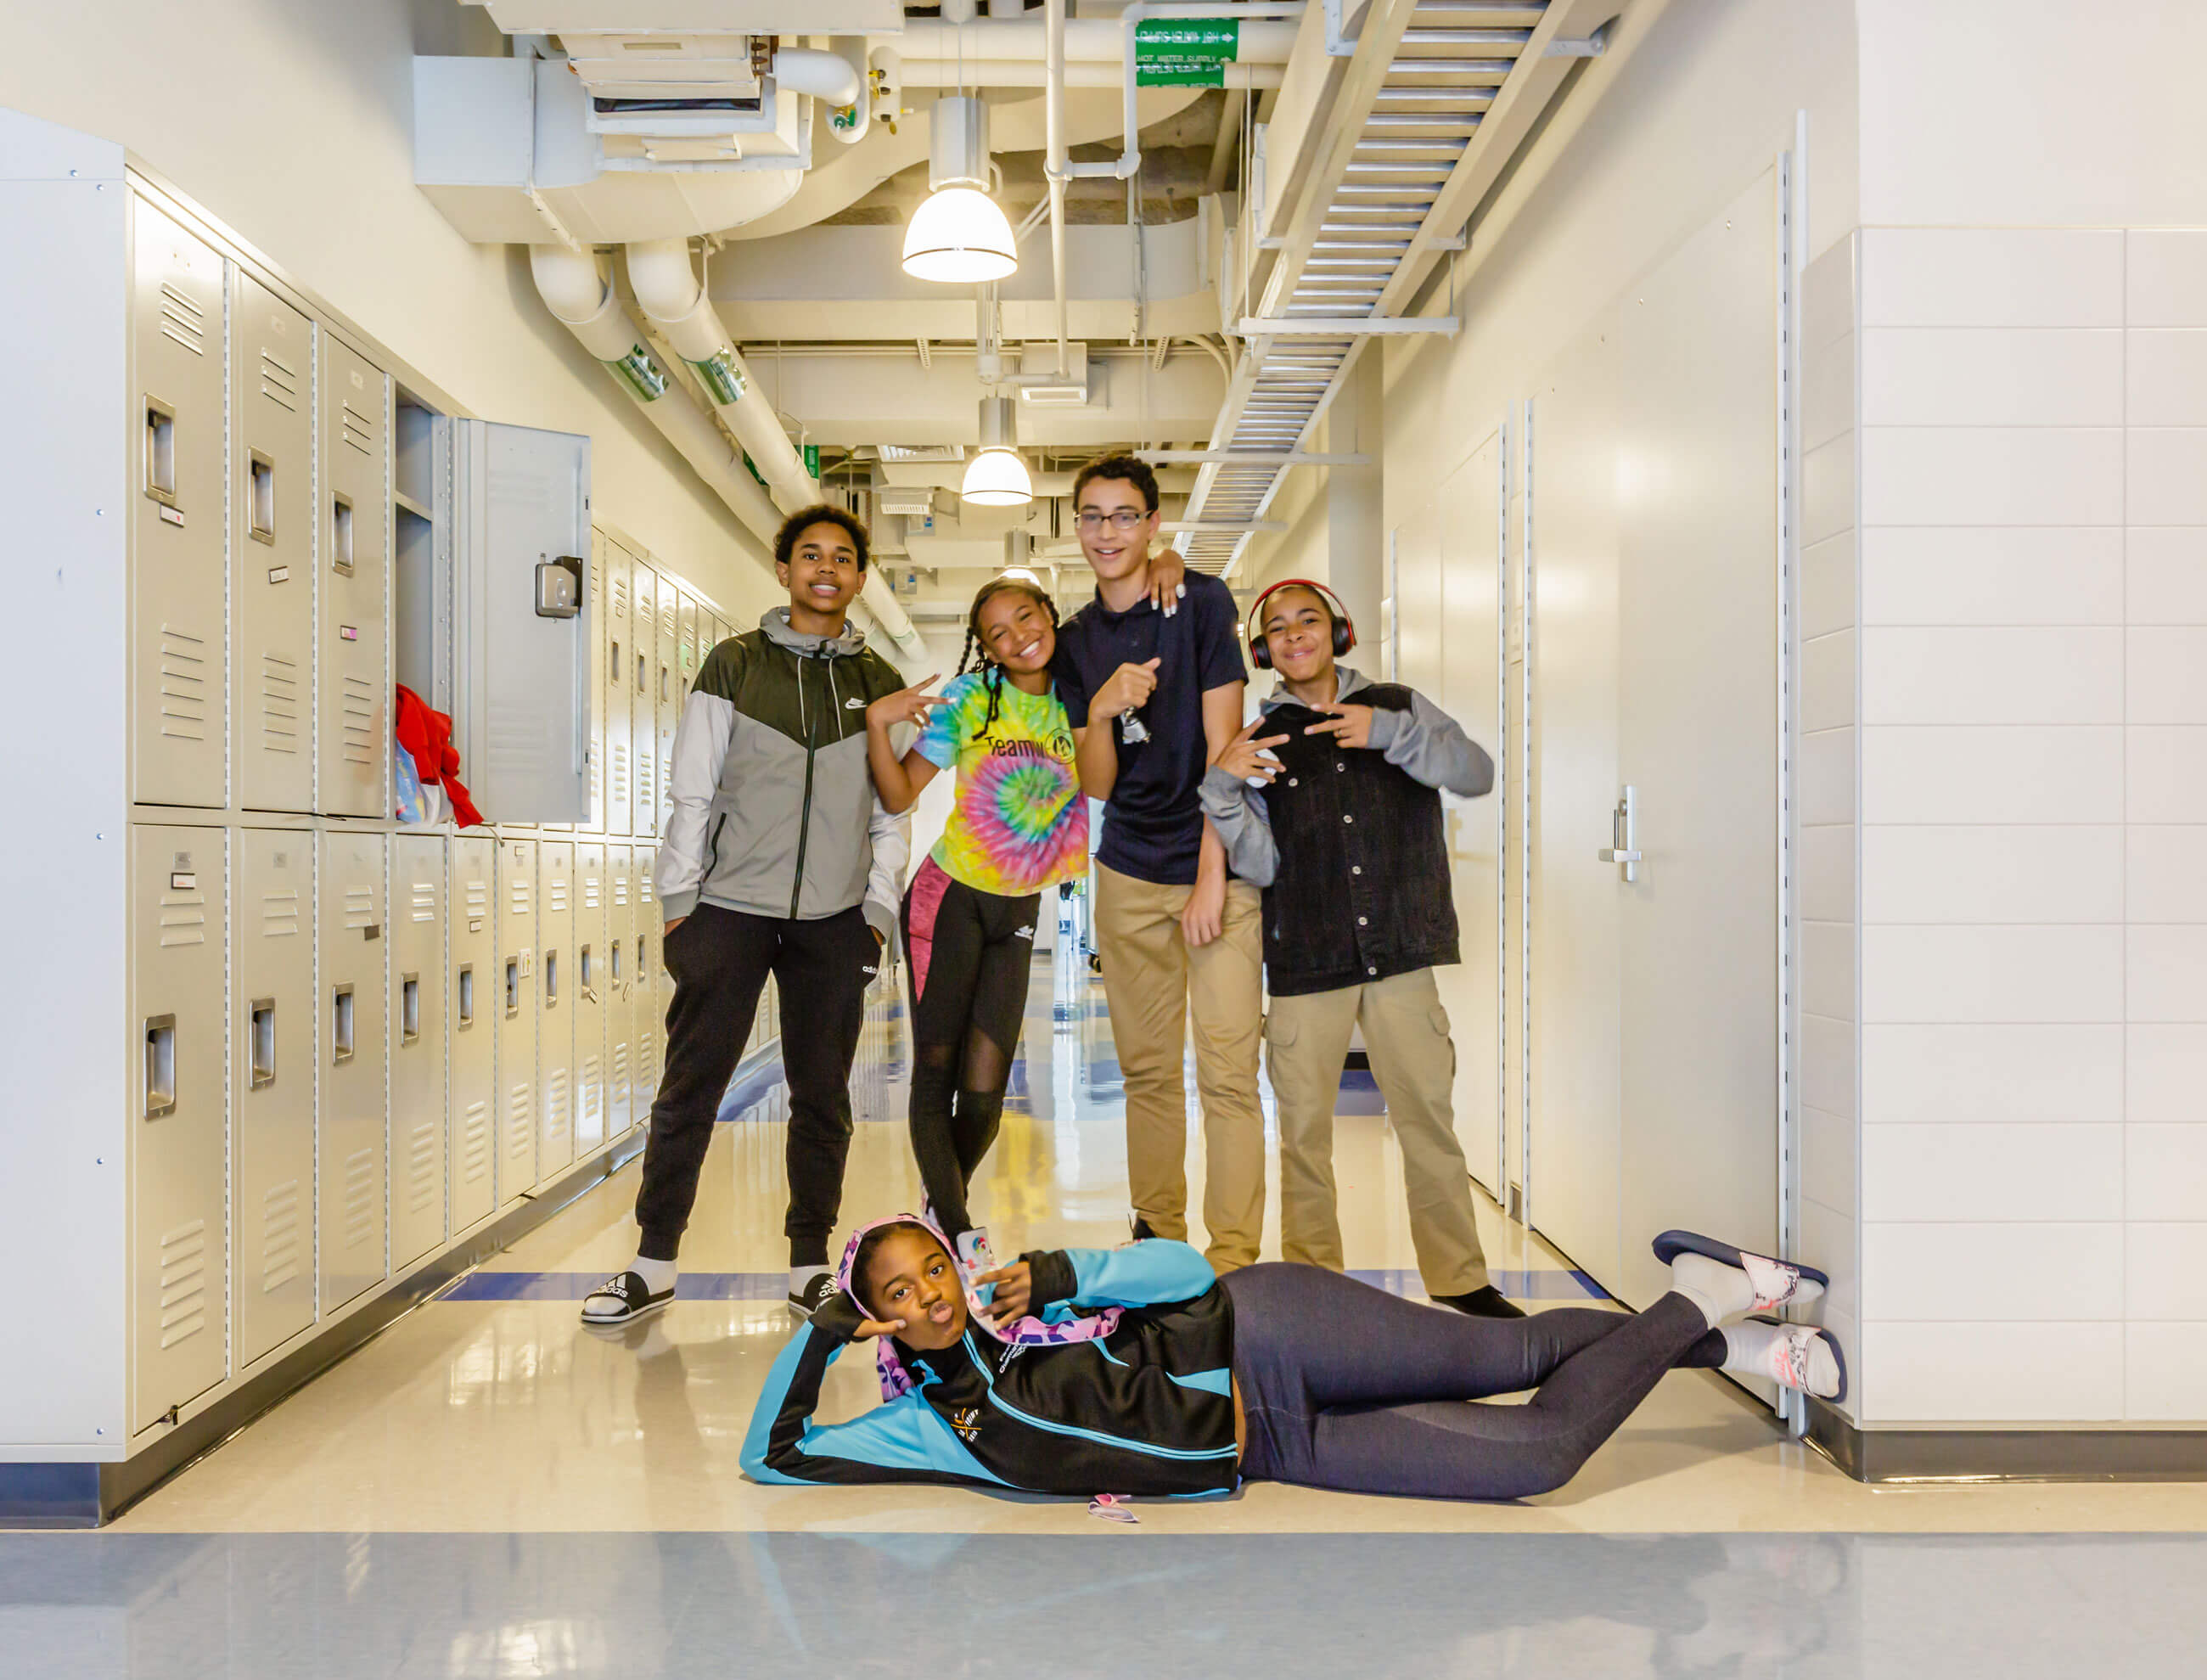 Students posing in a hallway with open lockers and exposed mechanical systems in the ceiling.